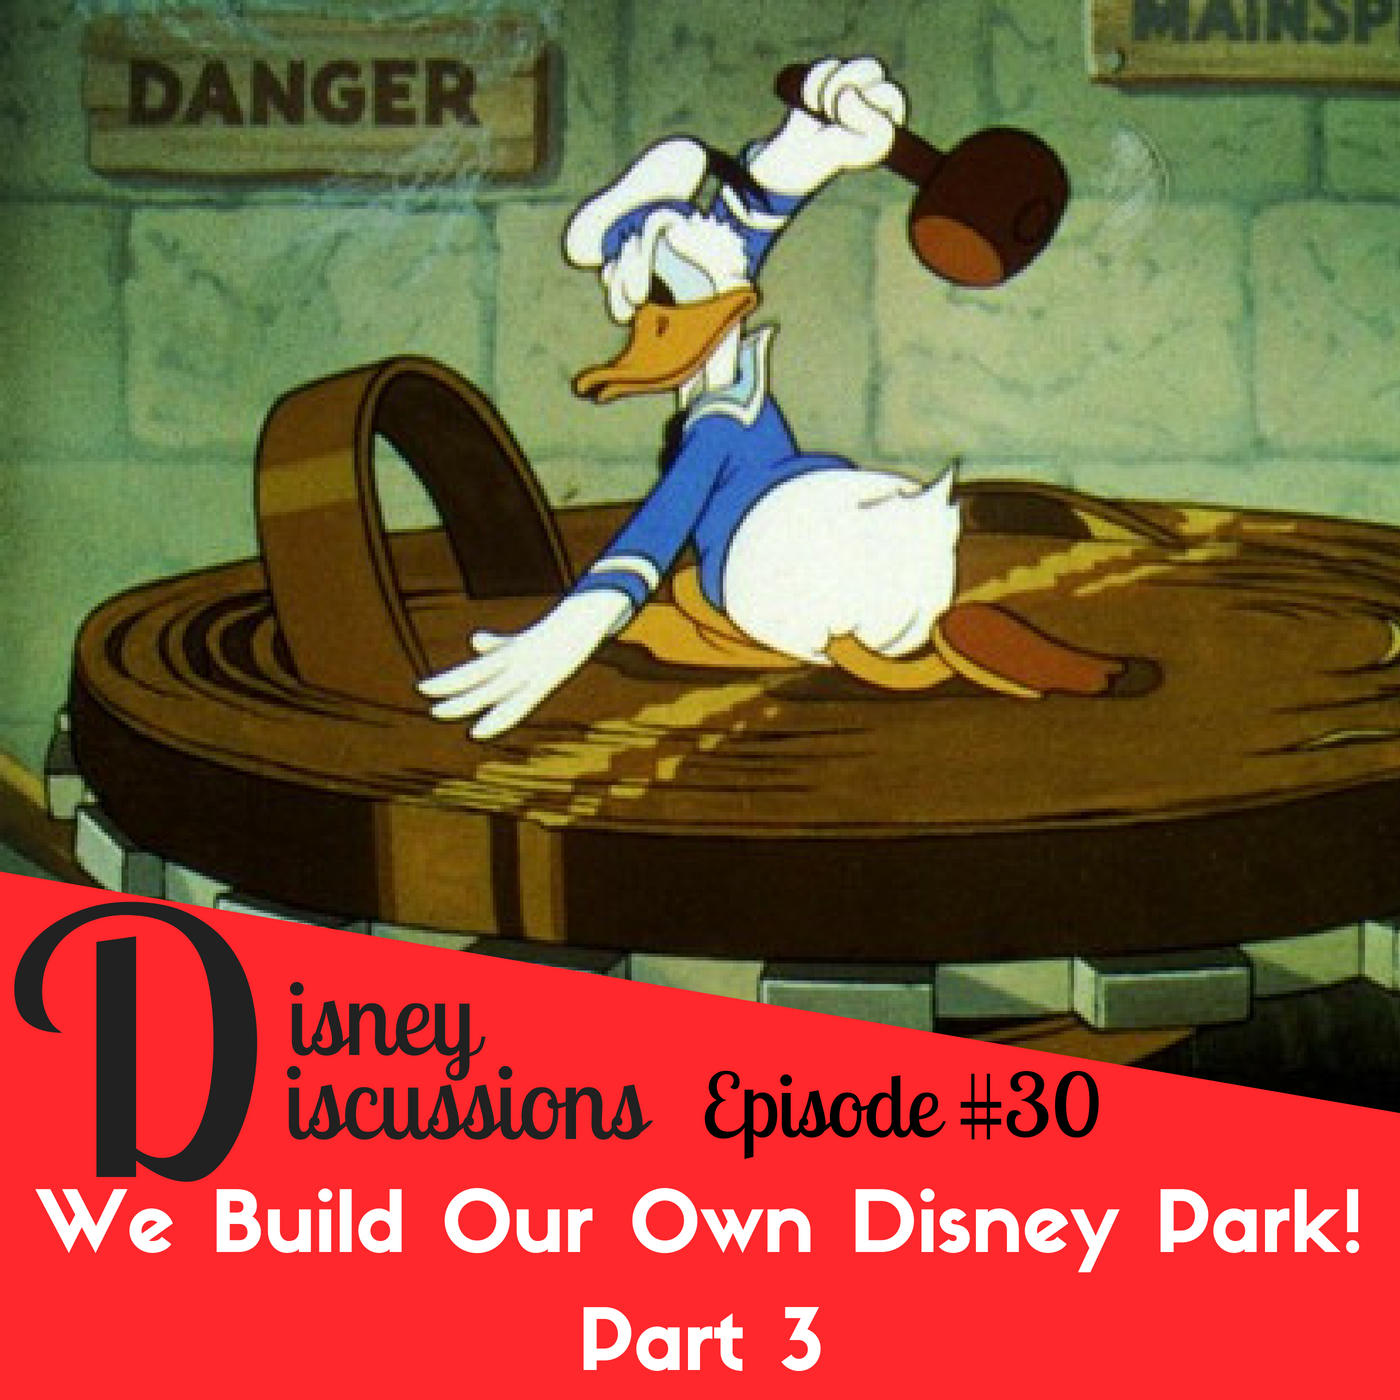 Part 3 of Build Our Own Disney Park, Toy Story Land Opens, Frozen 2 news, and more! - Disney Discussions